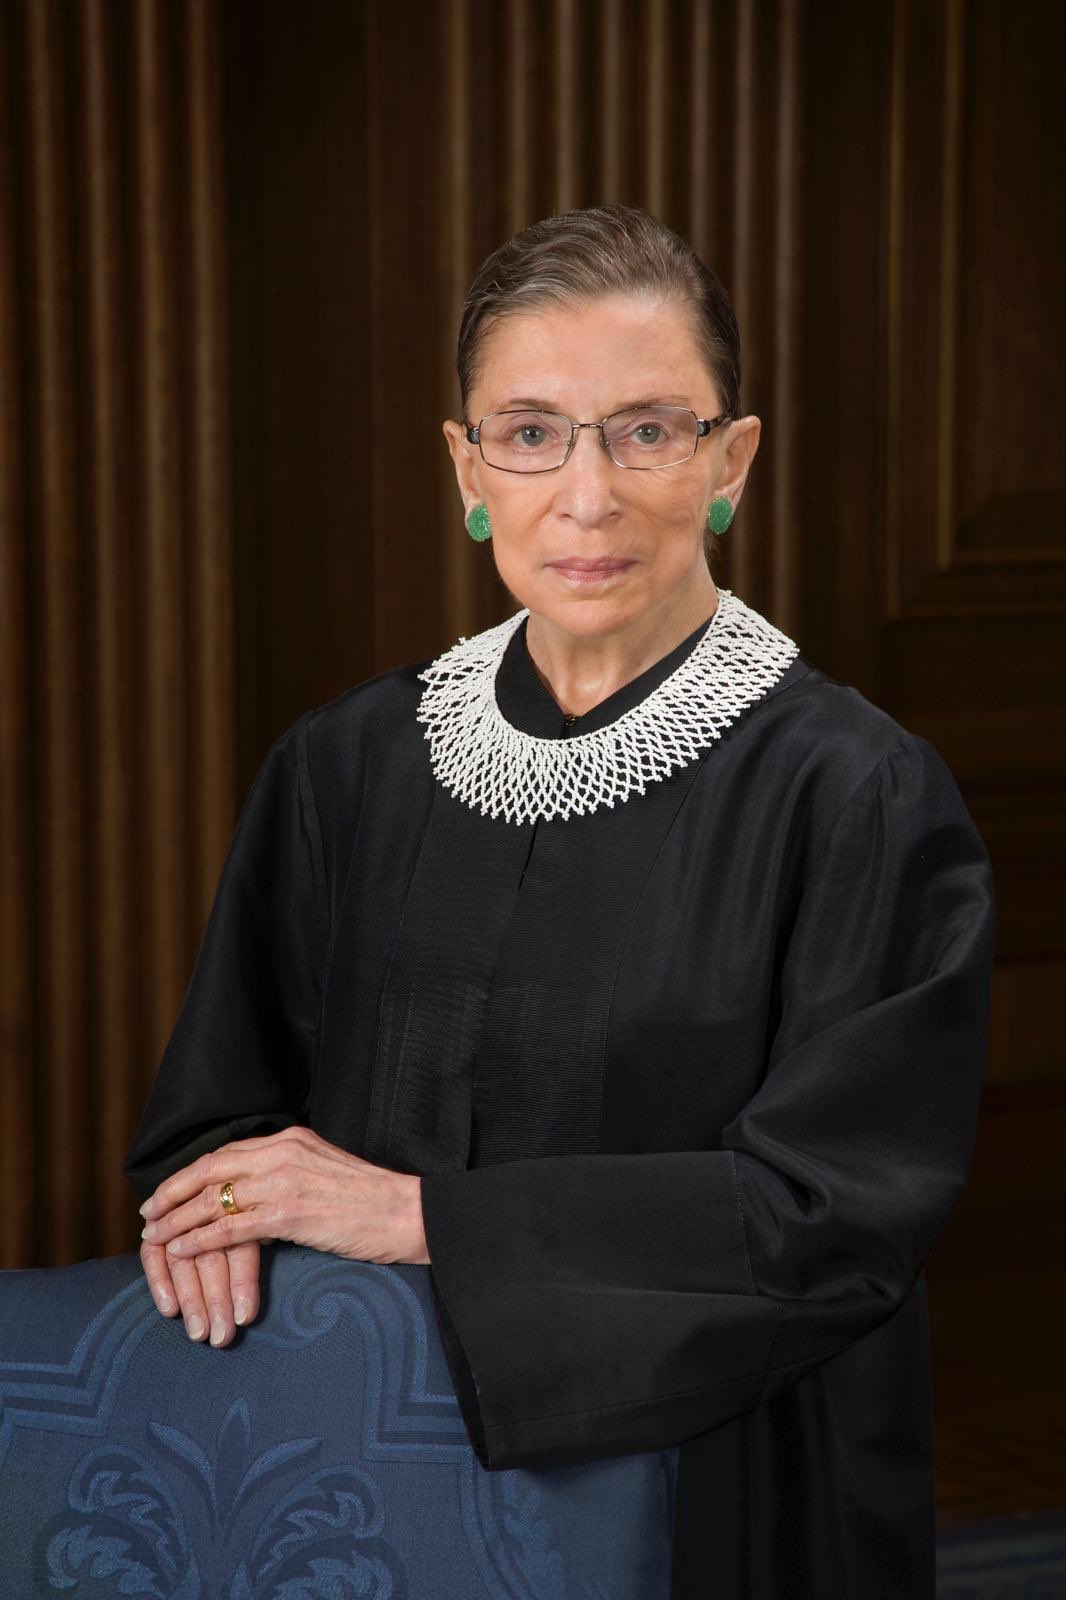 Ruth Bader Ginsburg Quotes by popular Seattle lifestyle blog, Whit Wanders: image of Ruth Bader Ginsburg wearing a black Supreme Court Justice robe, white lace collar necklace, and jade earrings.